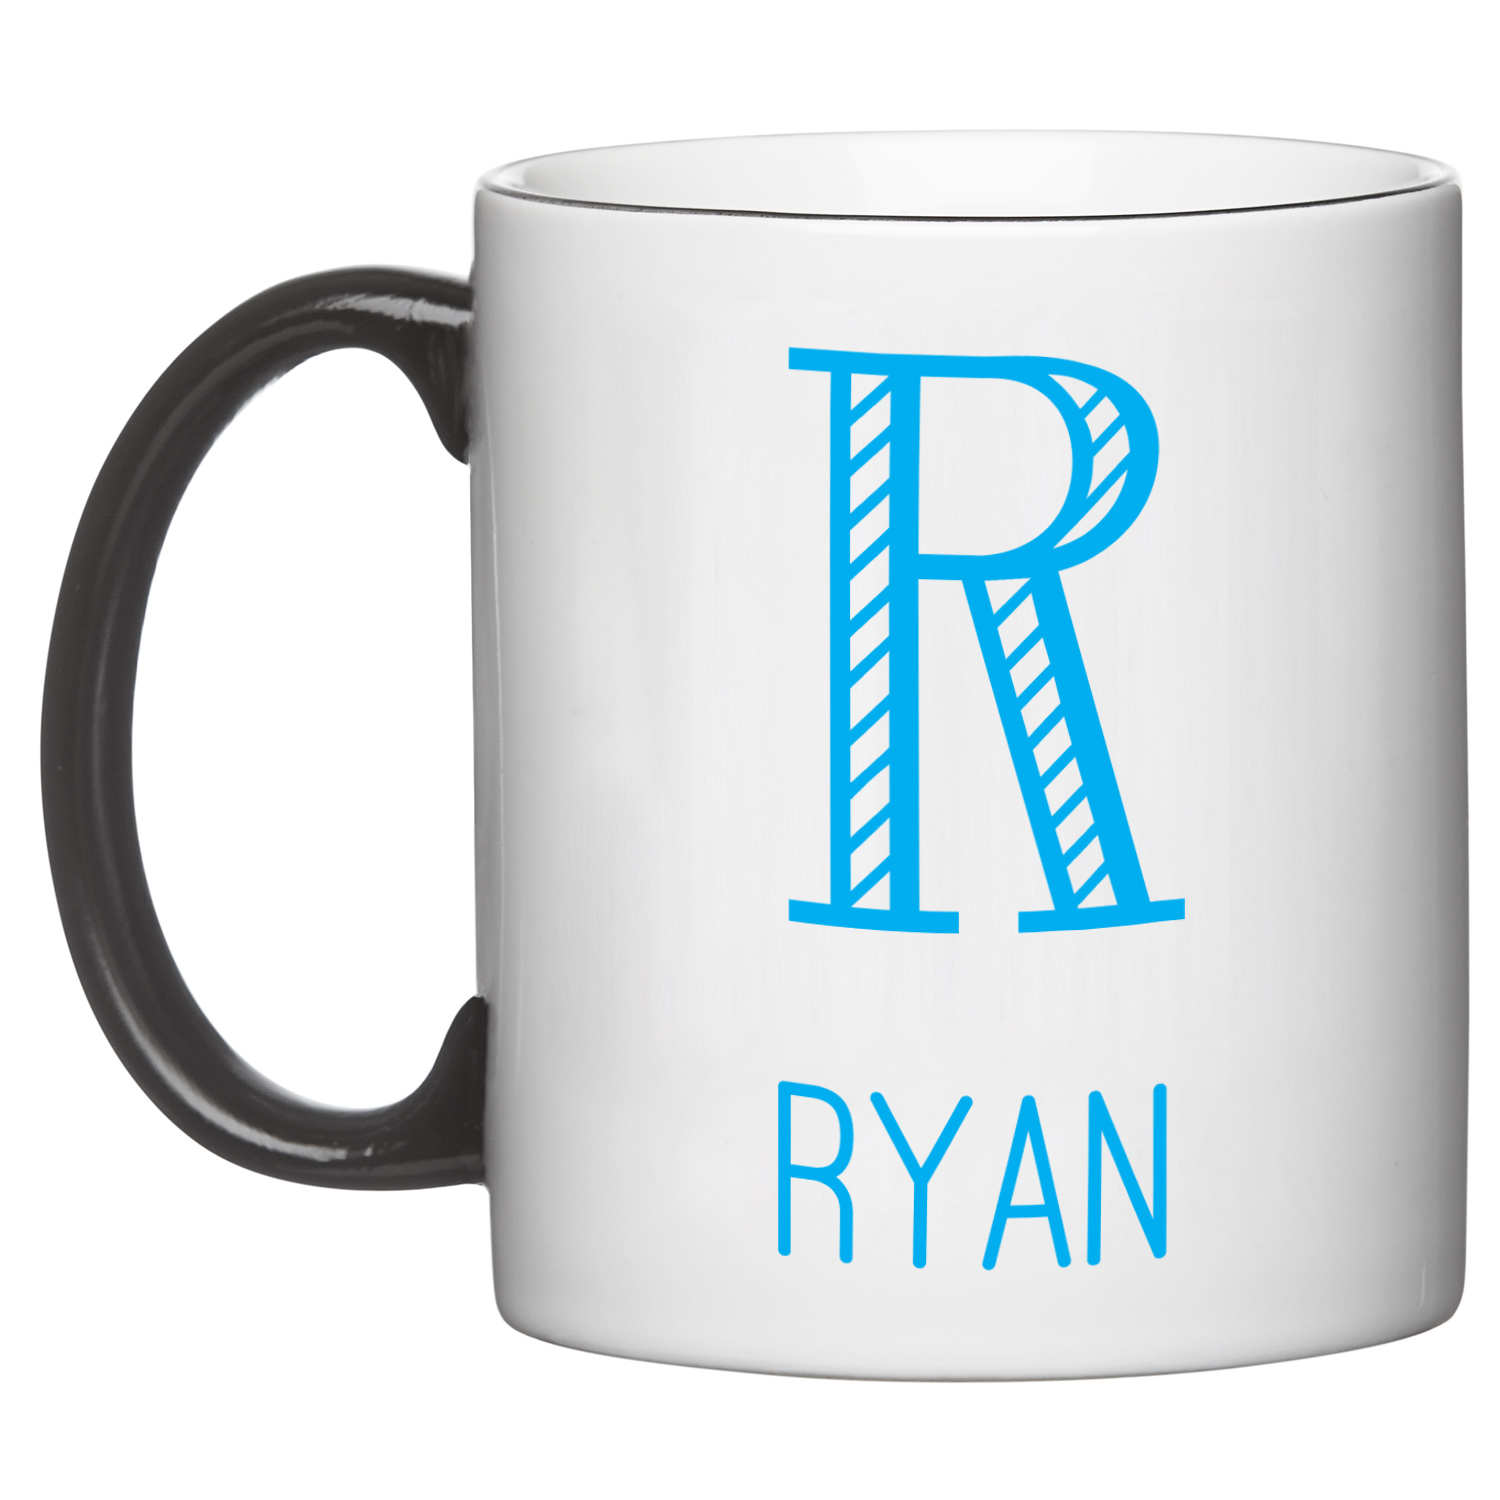 Personalized Whimsical Name & Monogram Mug - Black-Available in - Colors